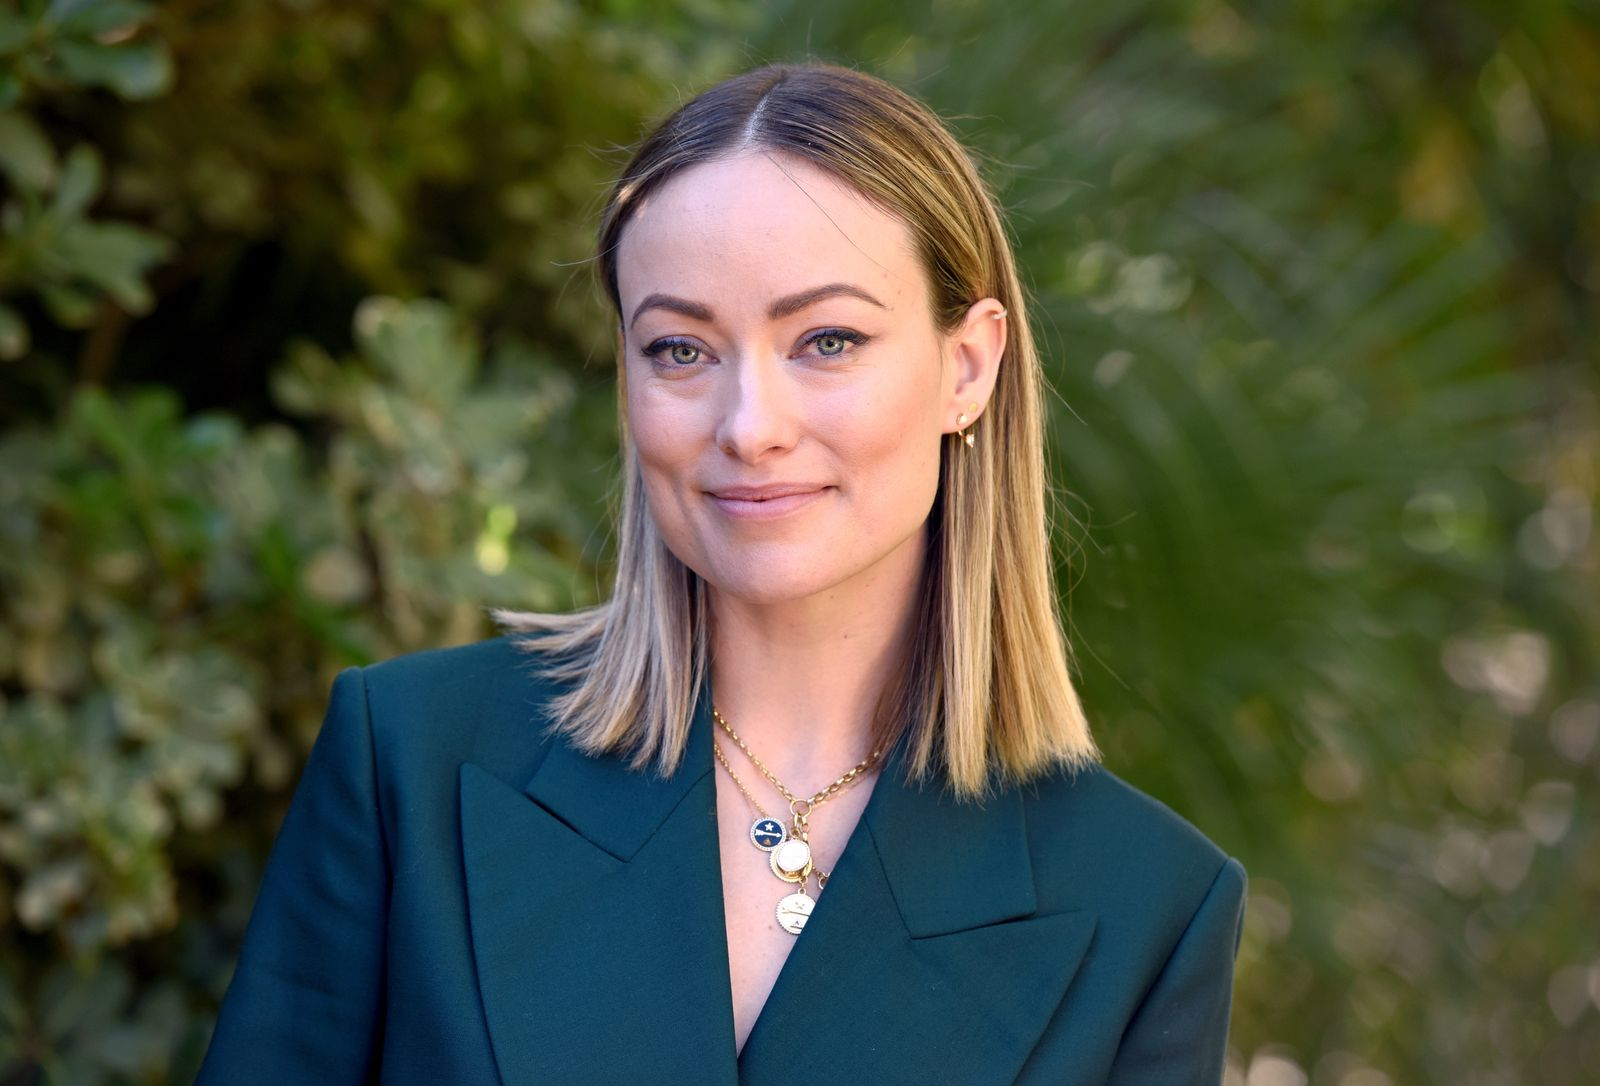 Olivia Wilde at Variety's Creative Impact Awardsduring the 30th annual Palm Springs International Film Festival in Palm Springs, California | Photo: Vivien Killilea/Getty Images for Palm Springs International Film Festival